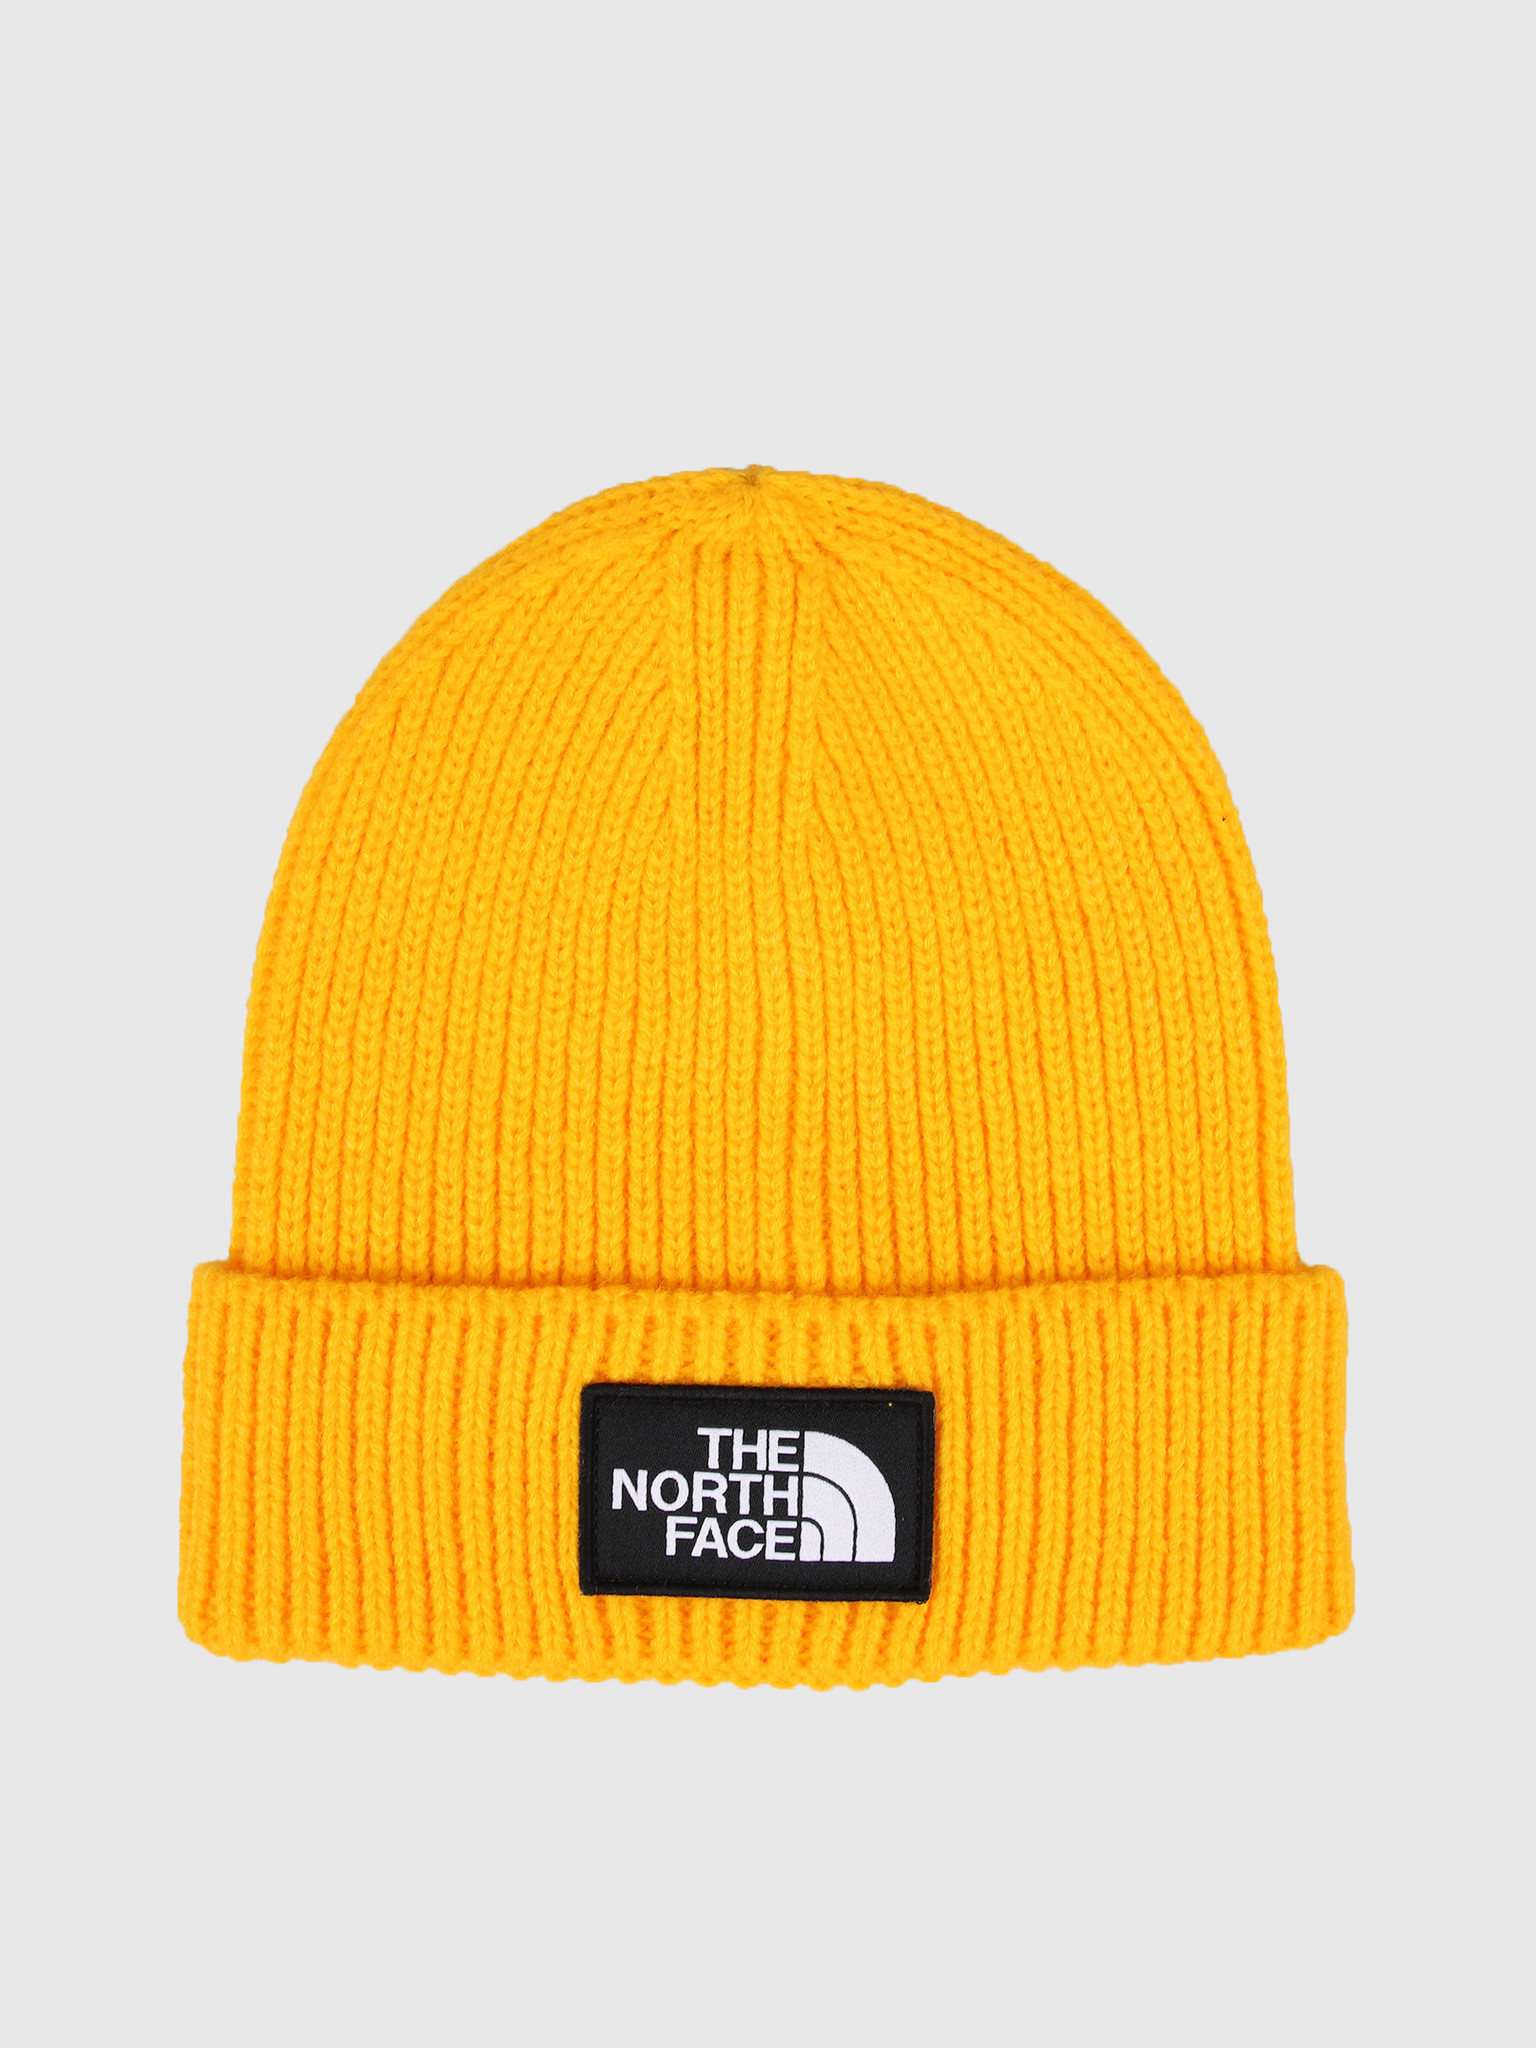 The North Face The North Face Logo Box Cuffed Beanie Yellow T93FJX70M